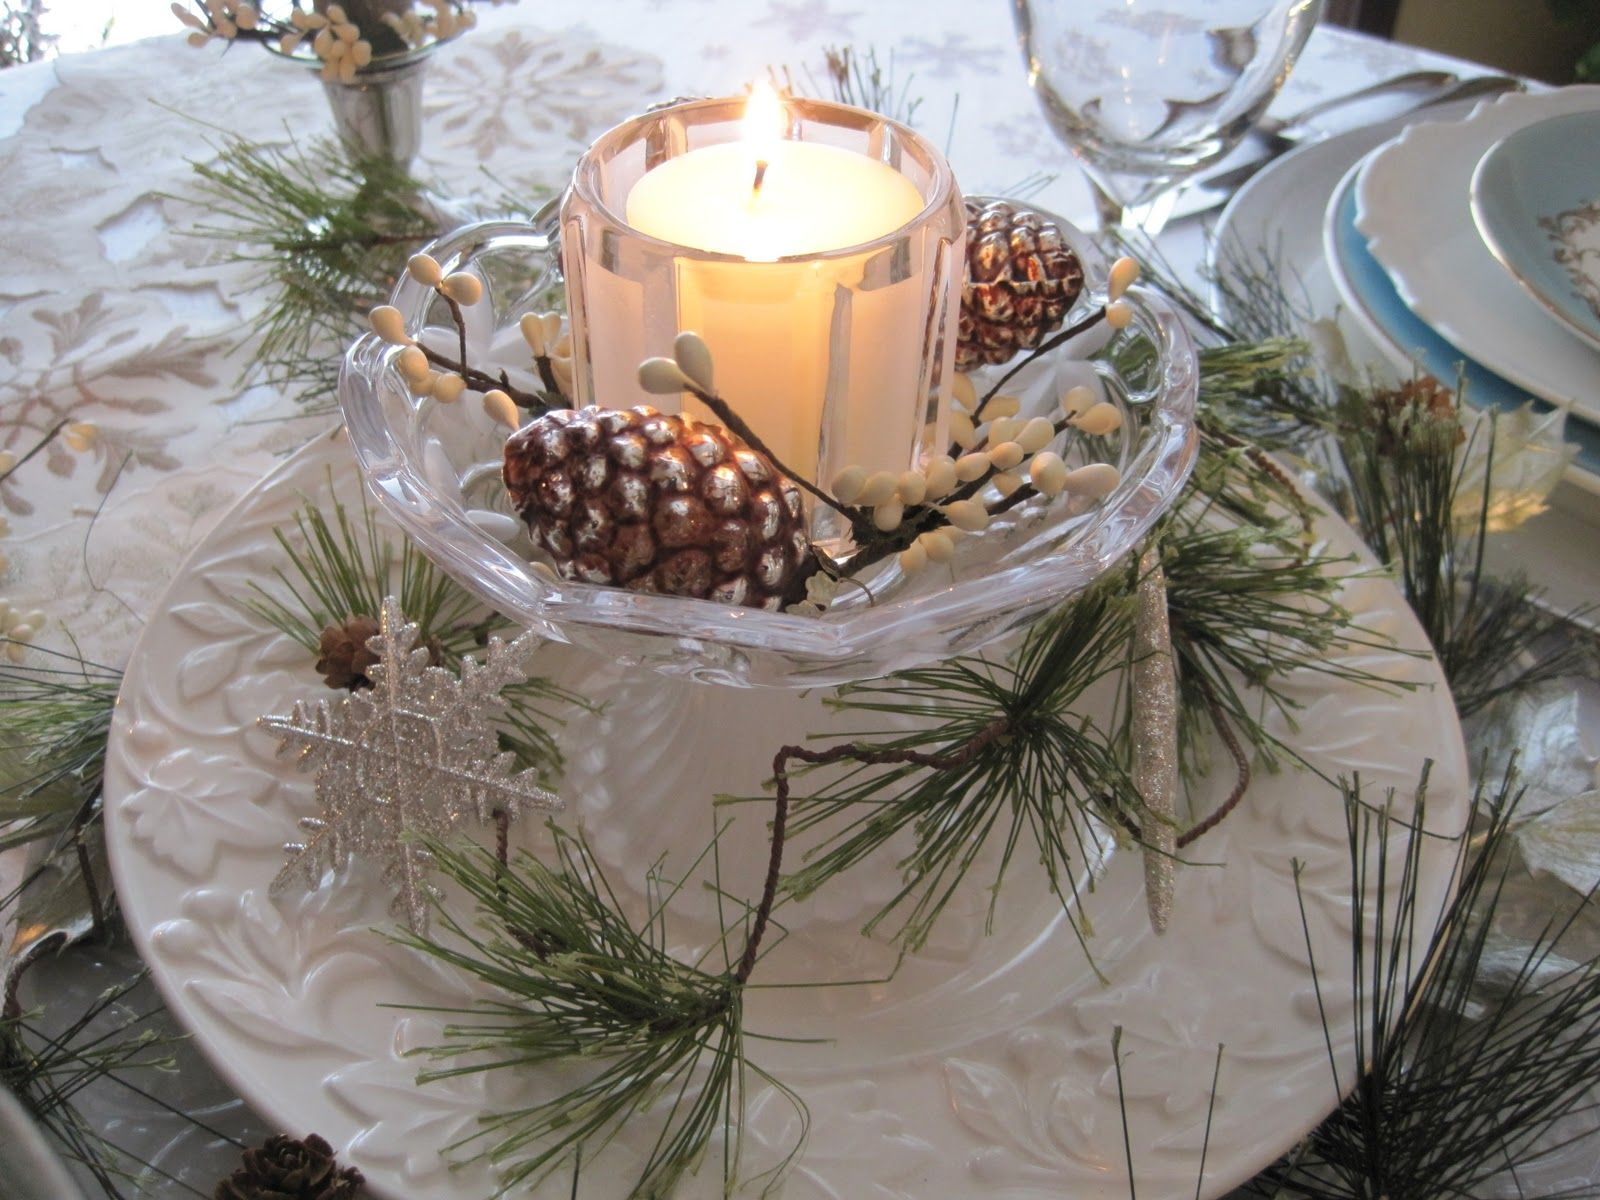 Pretty China Winter Centerpiece Yule Pinterest Winter Centerpieces